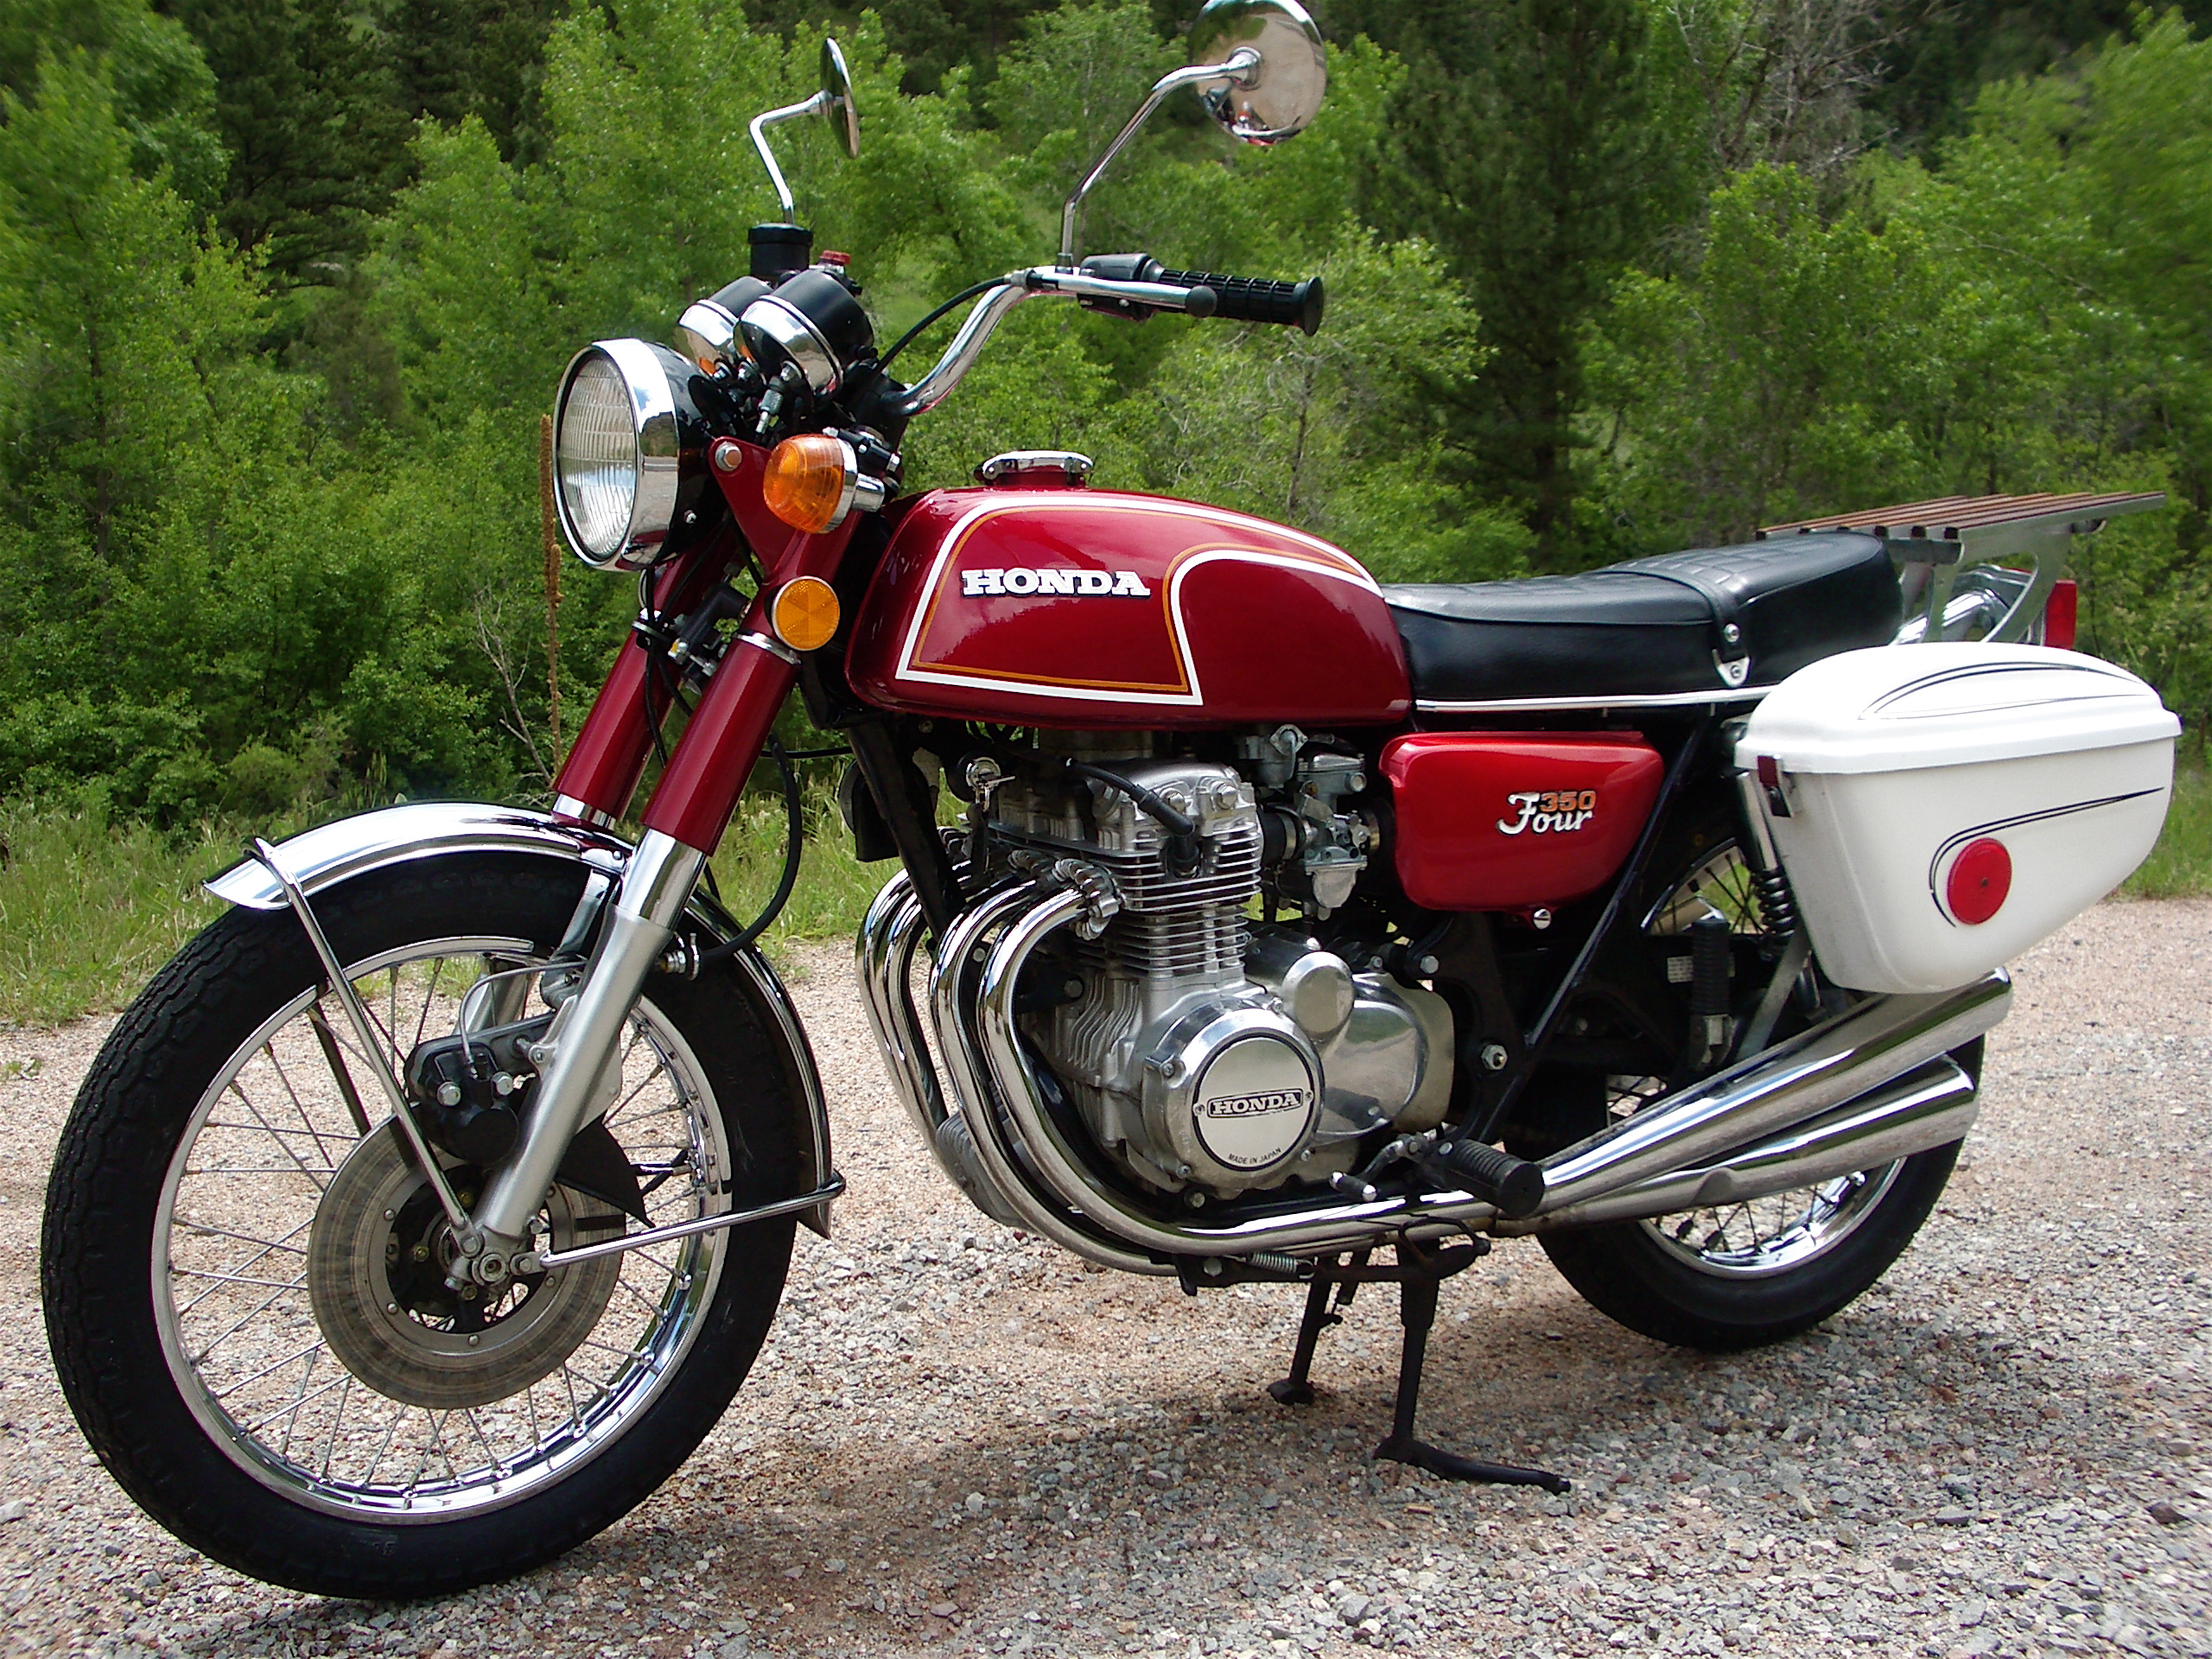 Benelli 350 RS 1979 images #75877